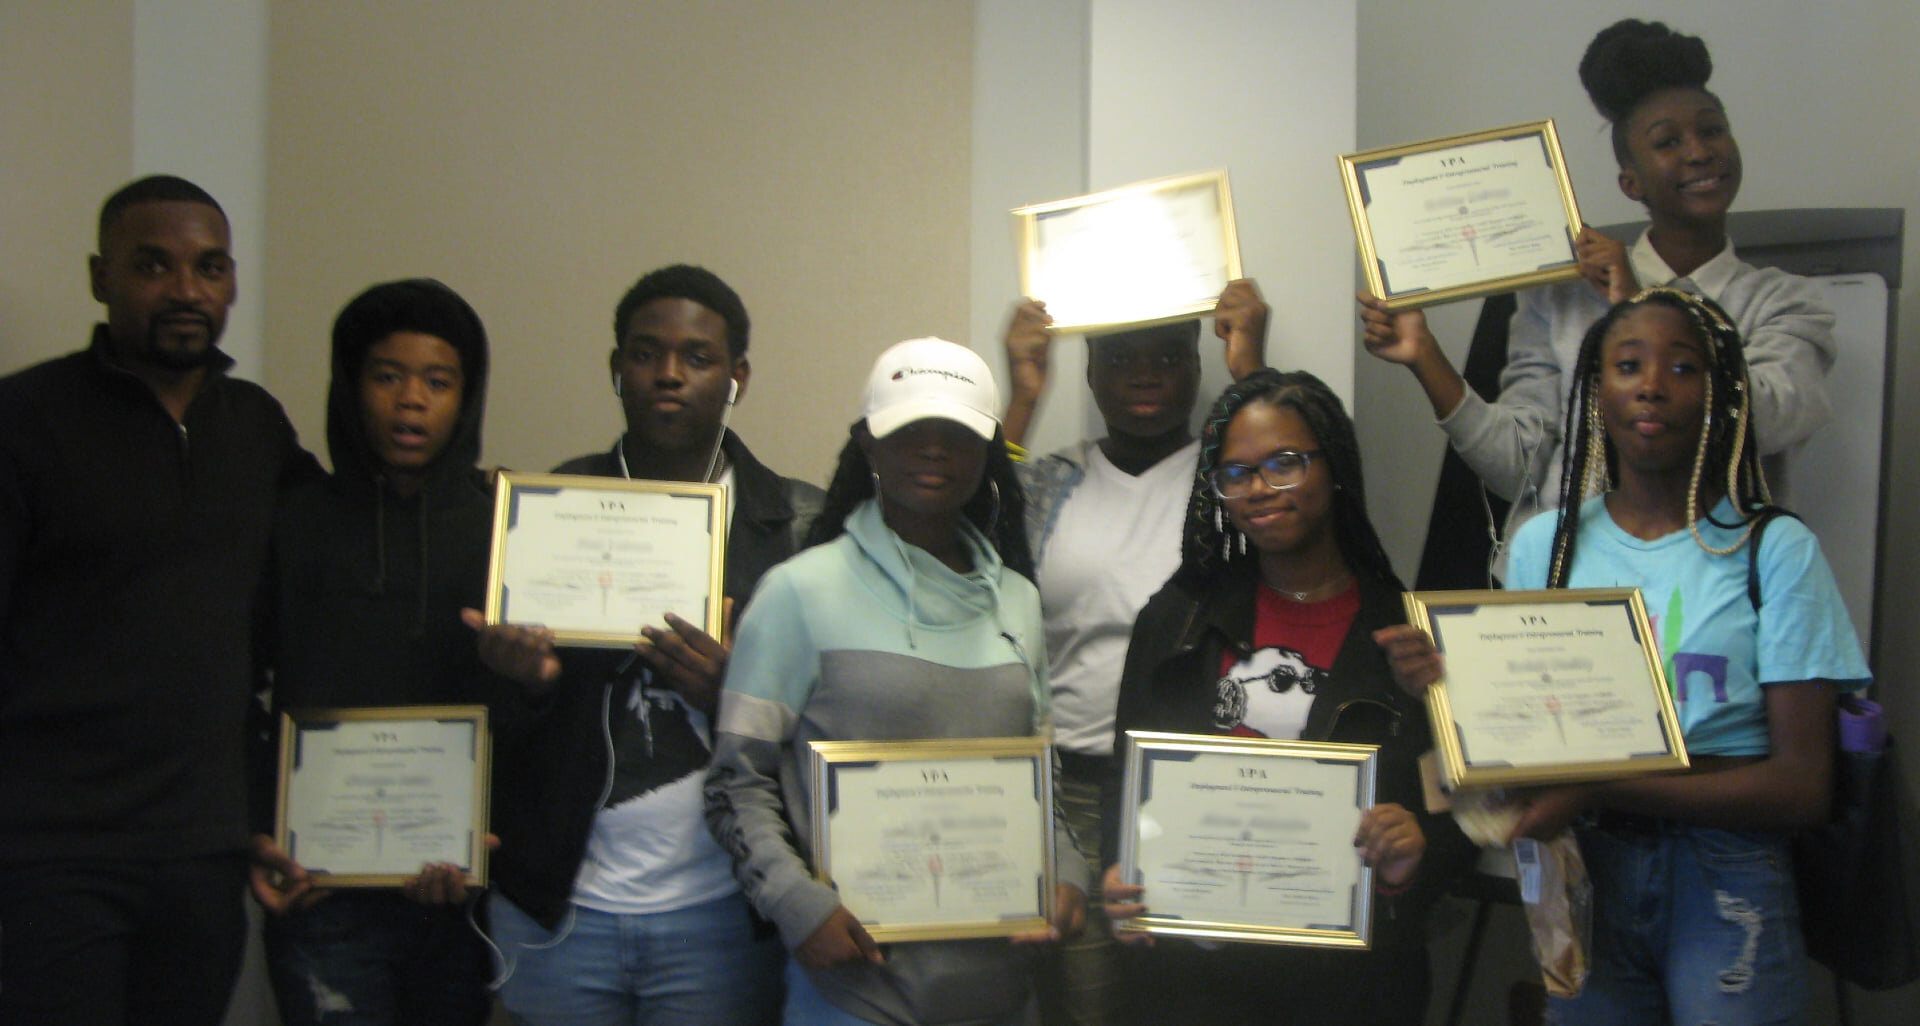 Congratulations to our EET Graduates!!! Such a rewarding experience working with our Young Entrepreneurs Group over the last two months... Continue to apply yourselves with vigor and Greatness shall bow before you!